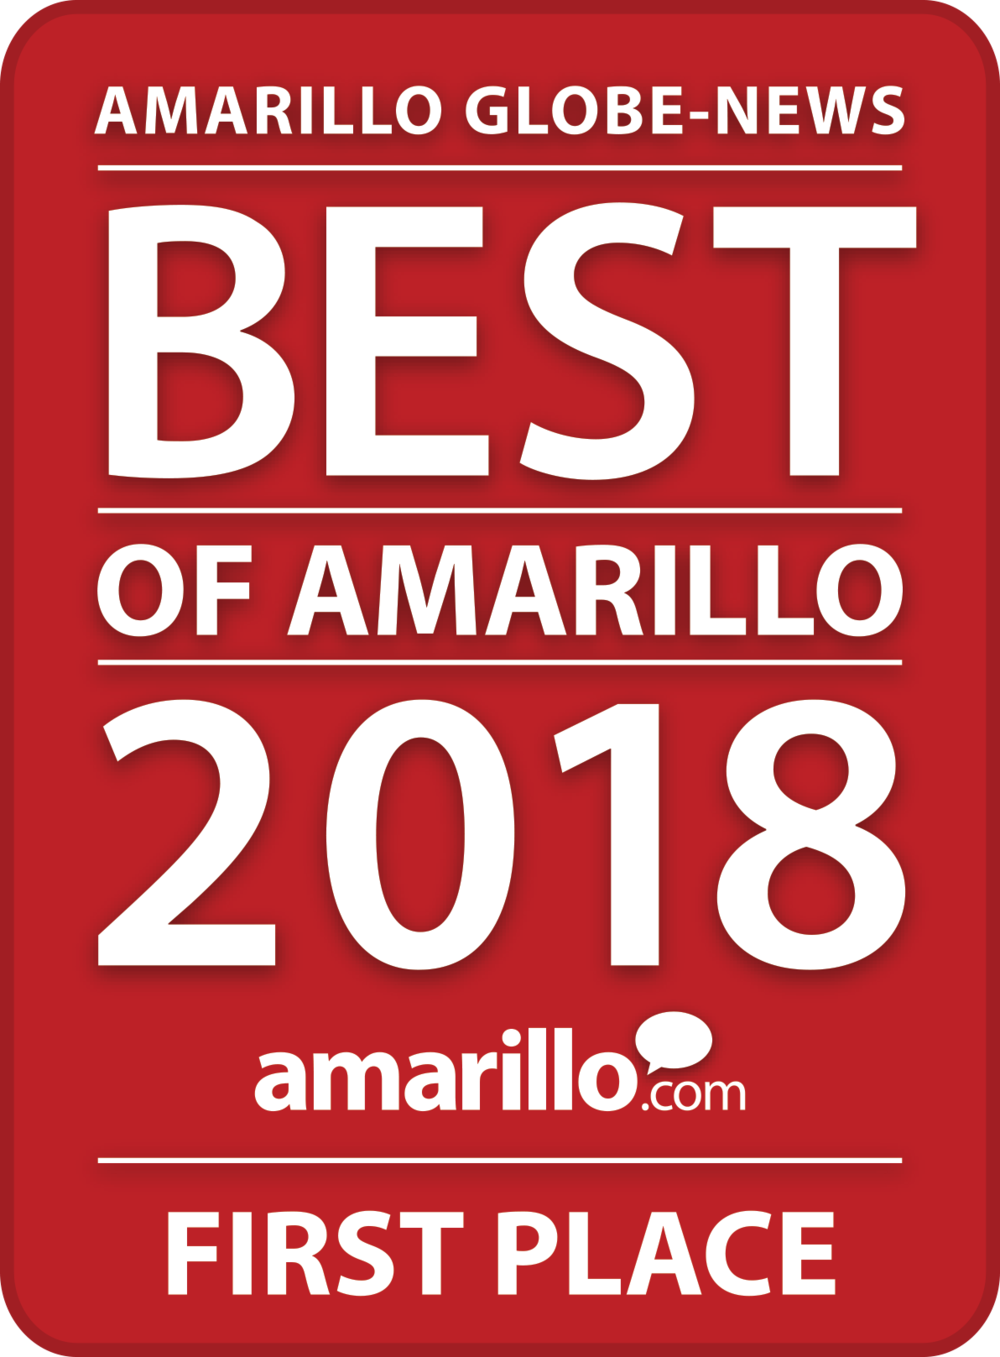 Best-Amarillo-Restaurant.png